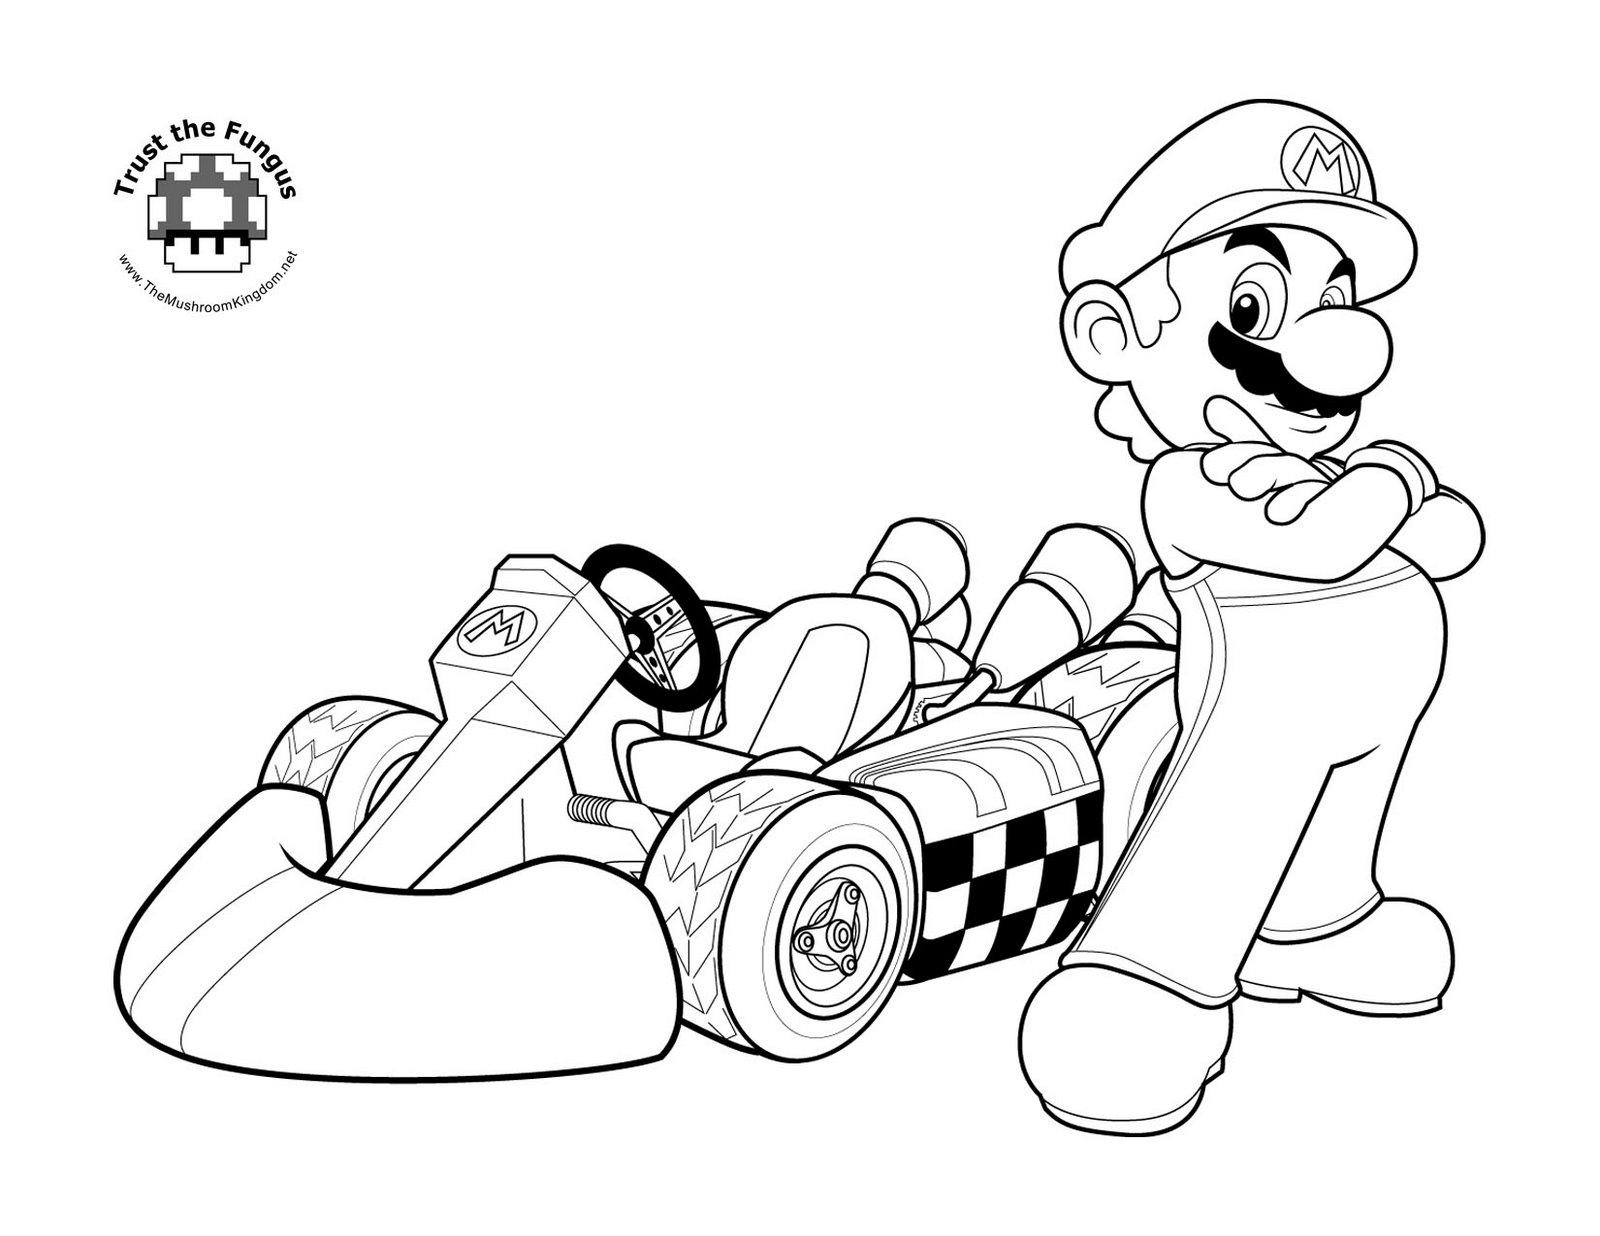 free printable mario coloring pages mario coloring pages black and white super mario printable free pages mario coloring